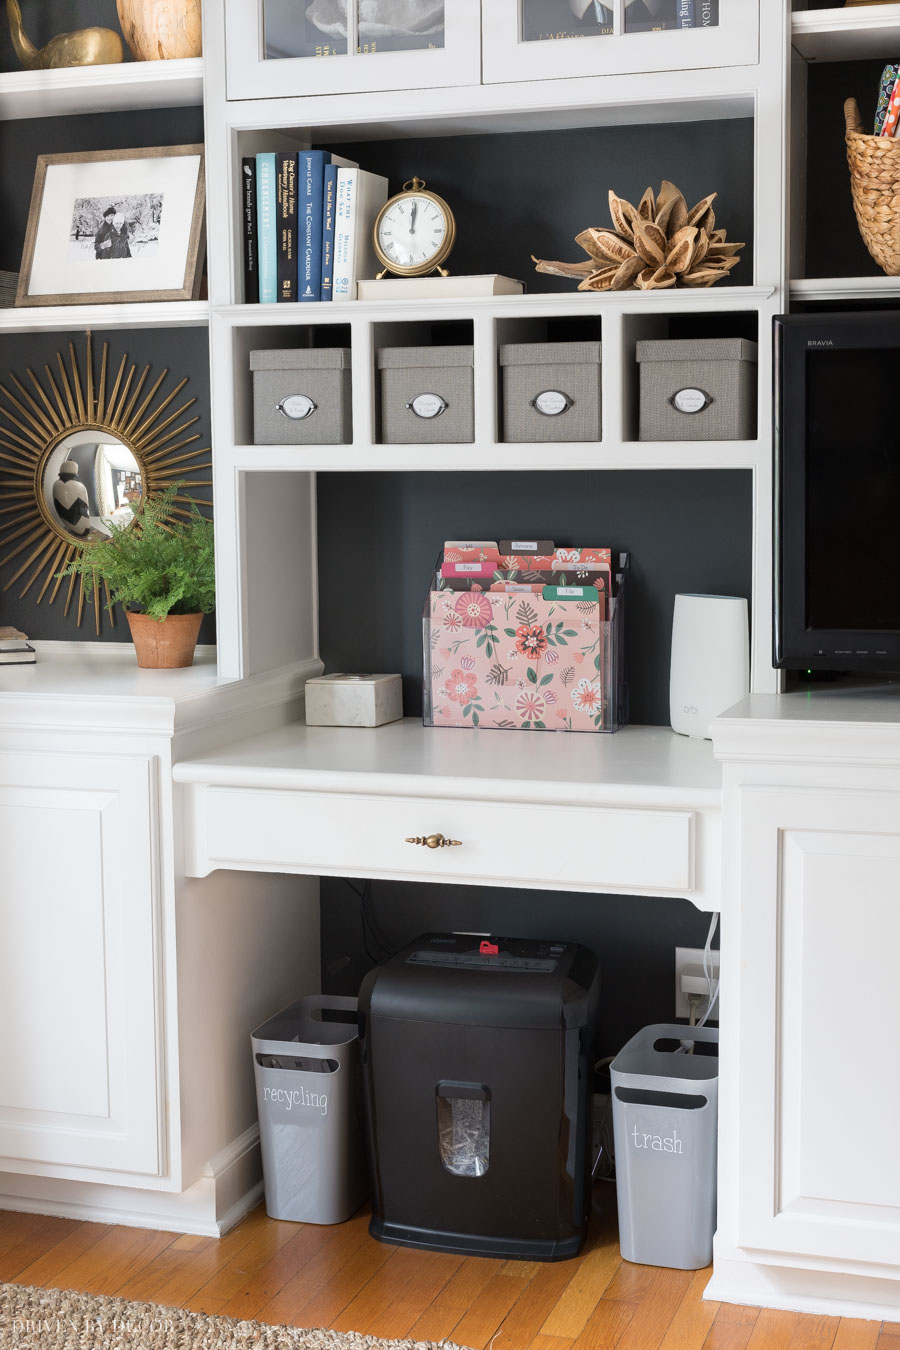 This organizing station with a desktop mail organizer is so smart for organizing your mails and bills!